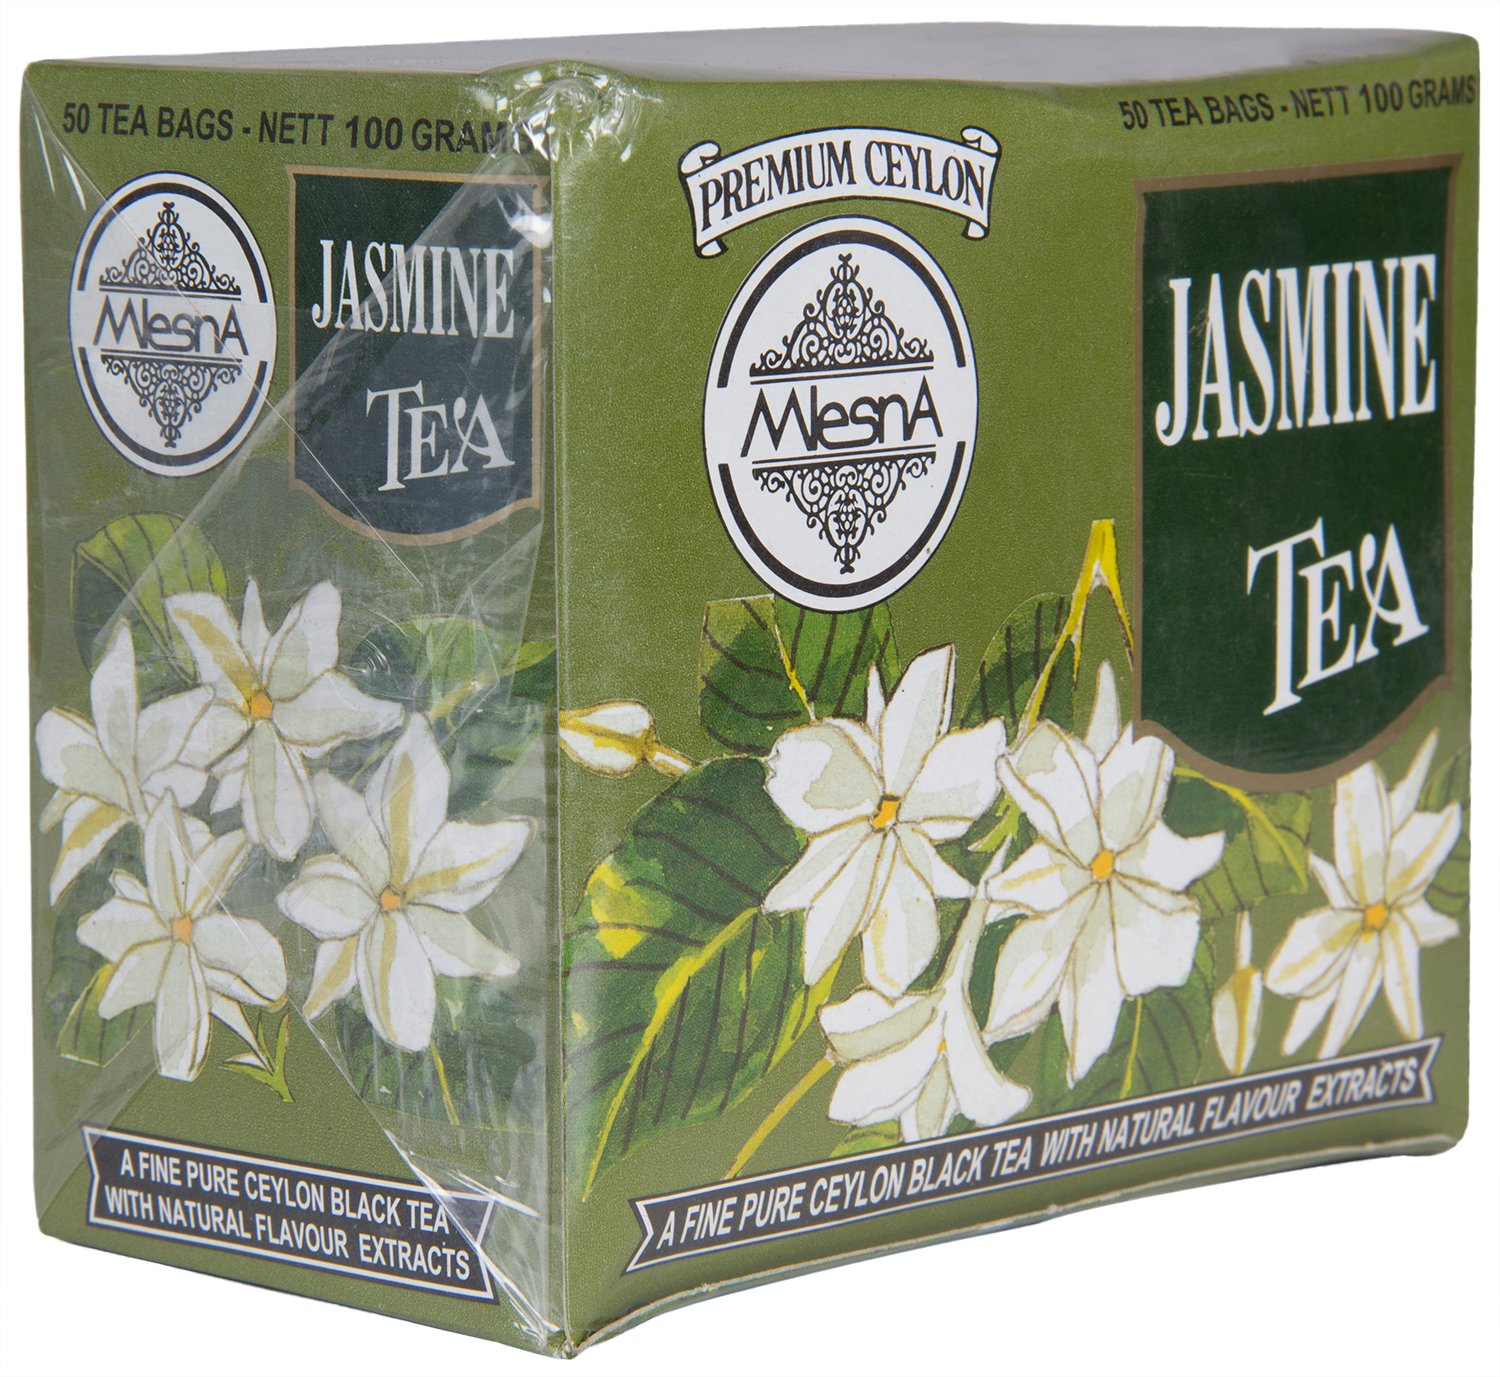 Mlesna flavoured tea bag jasmine 100g amazon grocery mlesna flavoured tea bag jasmine 100g amazon grocery gourmet foods izmirmasajfo Images